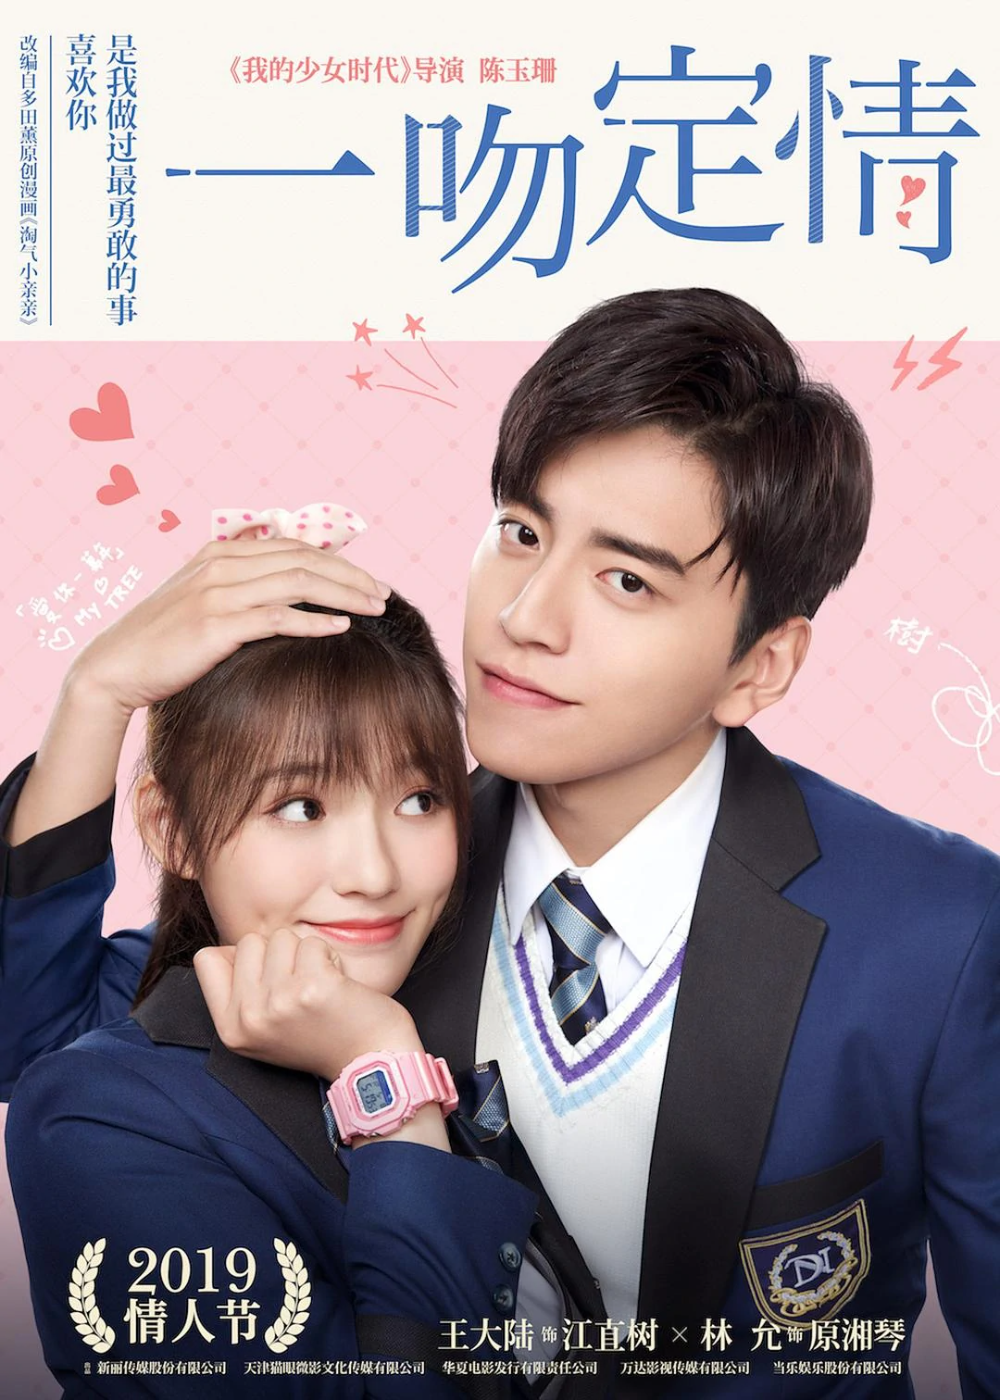 Fall In Love At First Kiss 2019 First Love First Kiss Japanese Drama